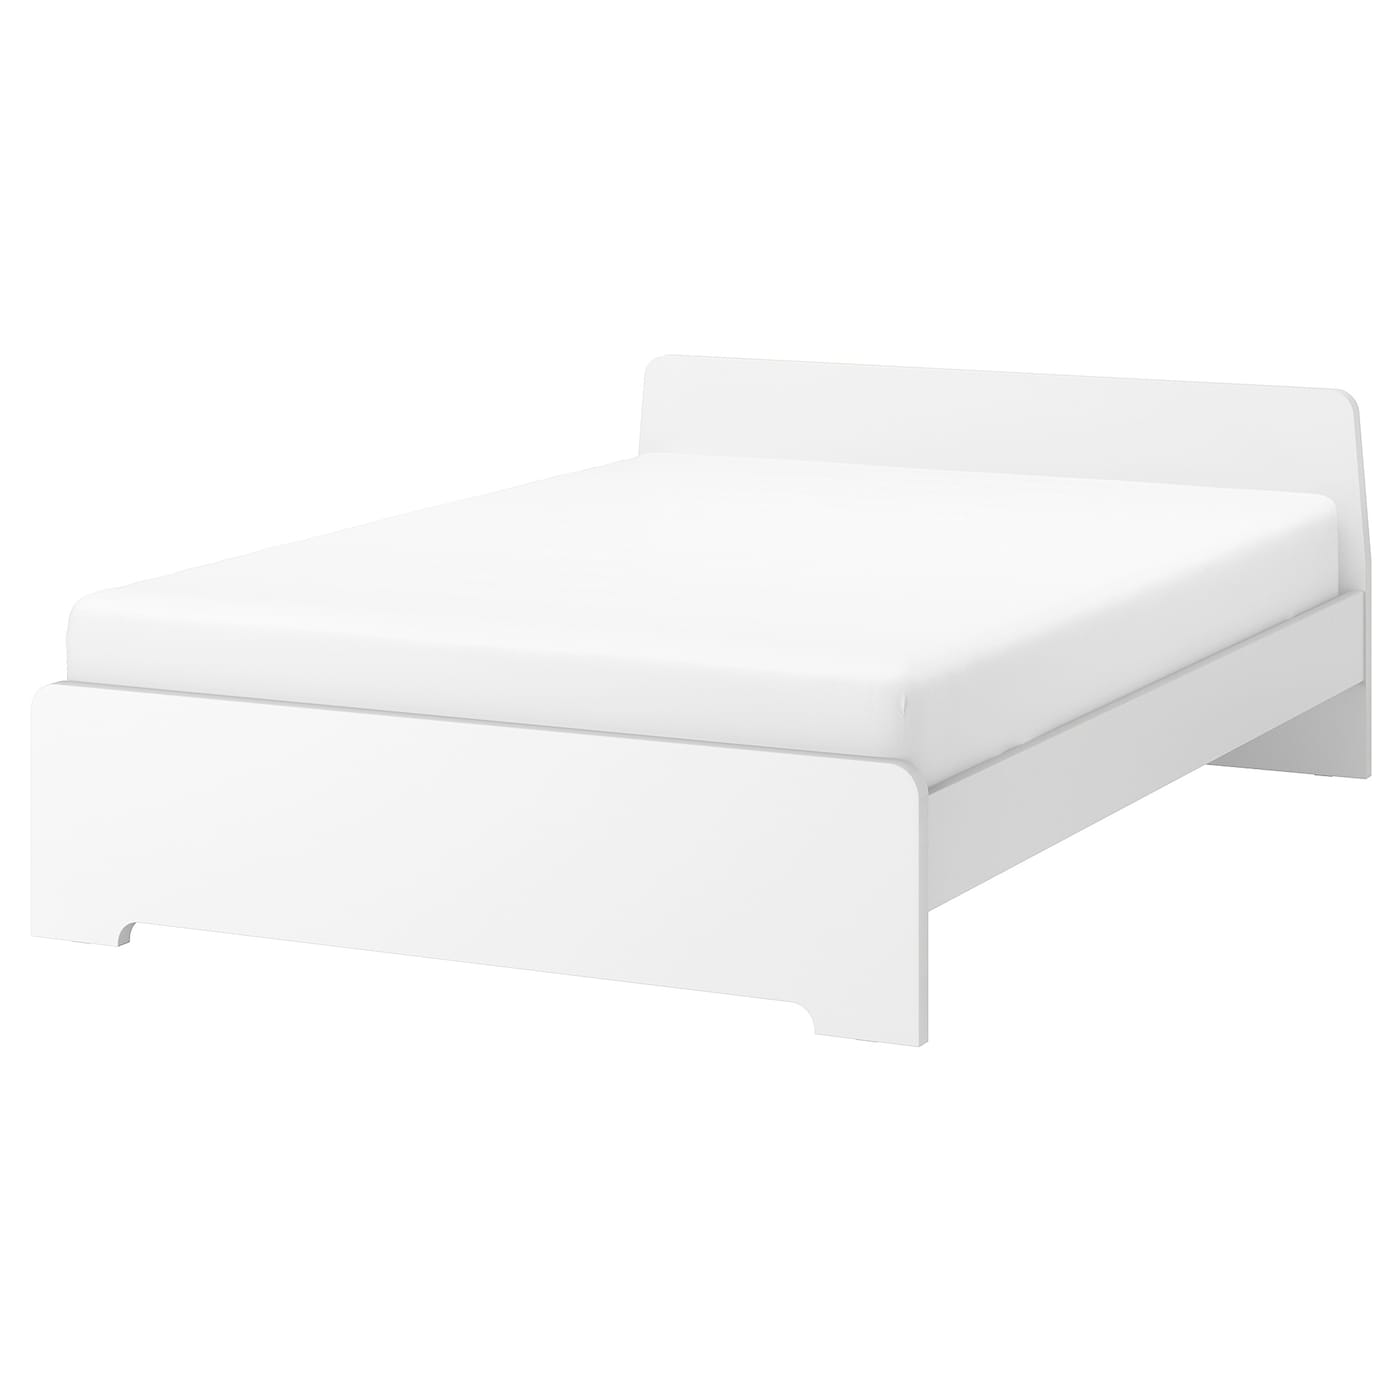 Double Beds King Super King Beds Ikea Ireland Dublin